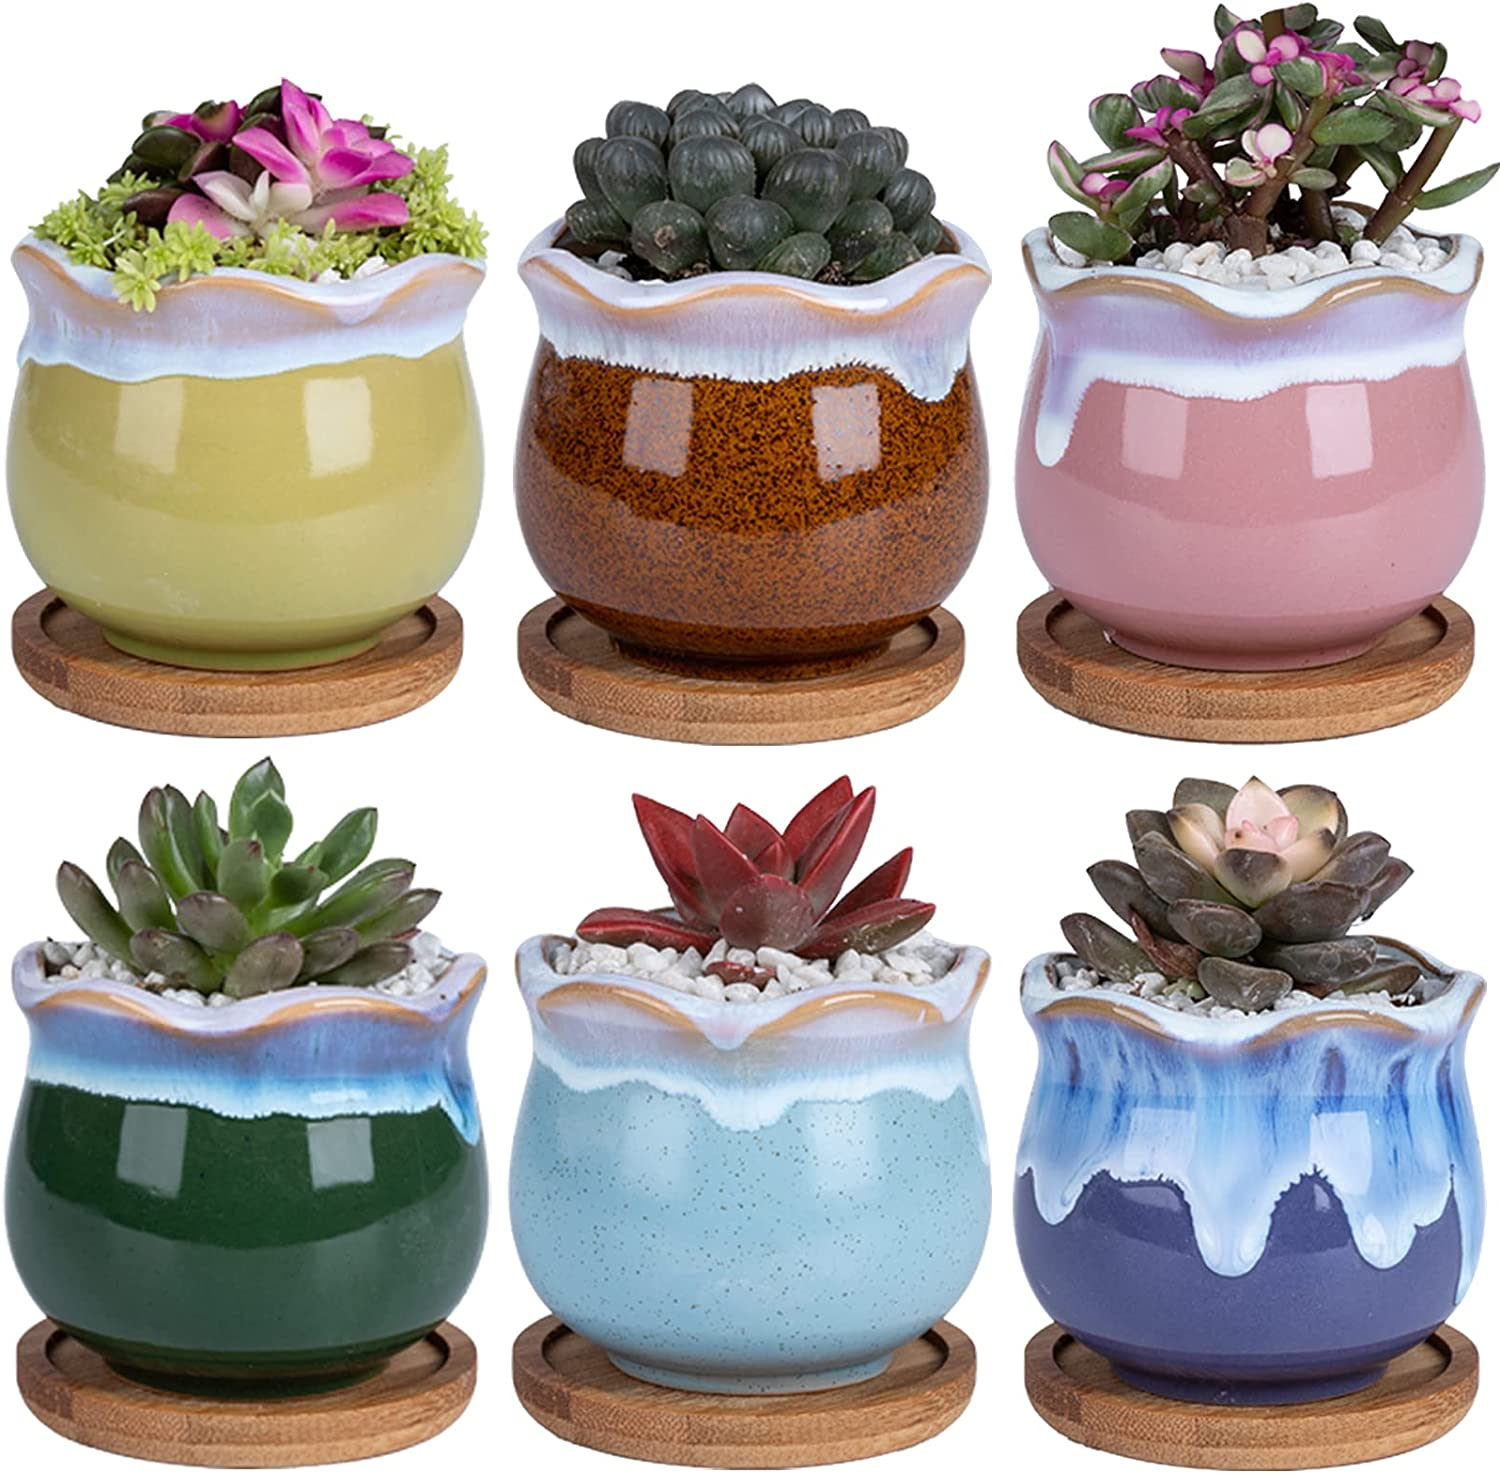 Ceramic Succulent Planters Garden Pots - DAFFBOX 2.75 Inch Small Ceramic Pots for Plants, Succulents, Cactus, Aloe, Plant Pots with Hole Mesh Pads and Waterproof Trays, Set of 6(Plants Not Included)